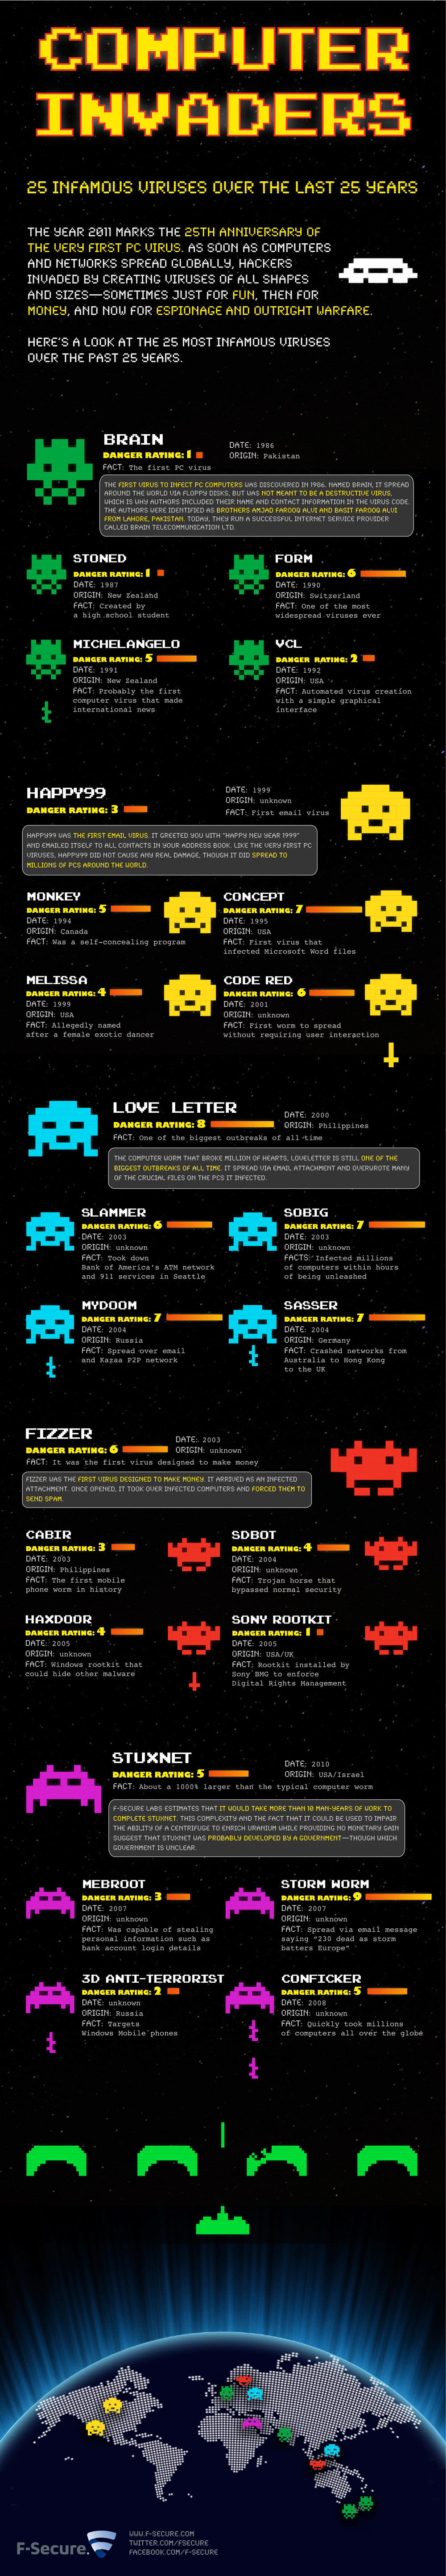 25 most infamous Computer Viruses